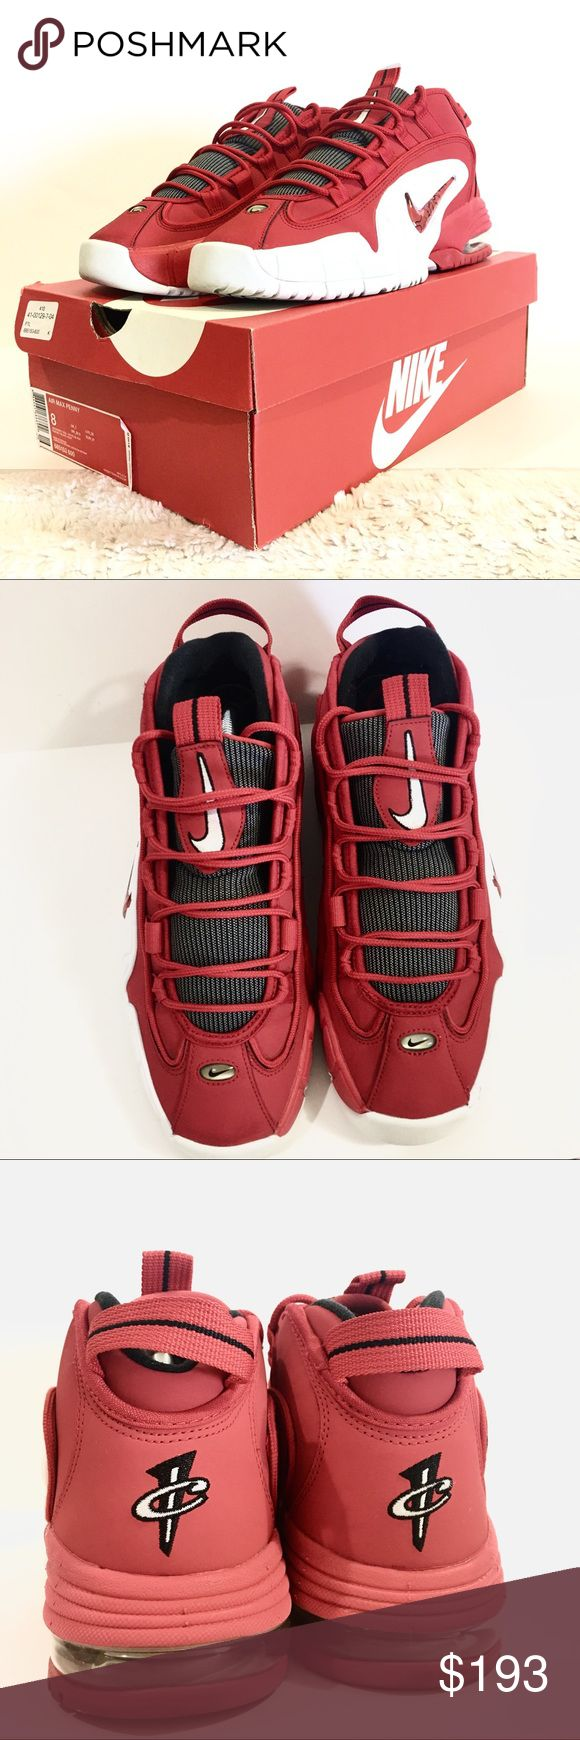 Nike Air Max Penny Hardaway University Red DS VVGUC, well taken care of. Box included. Nike Shoes Sneakers